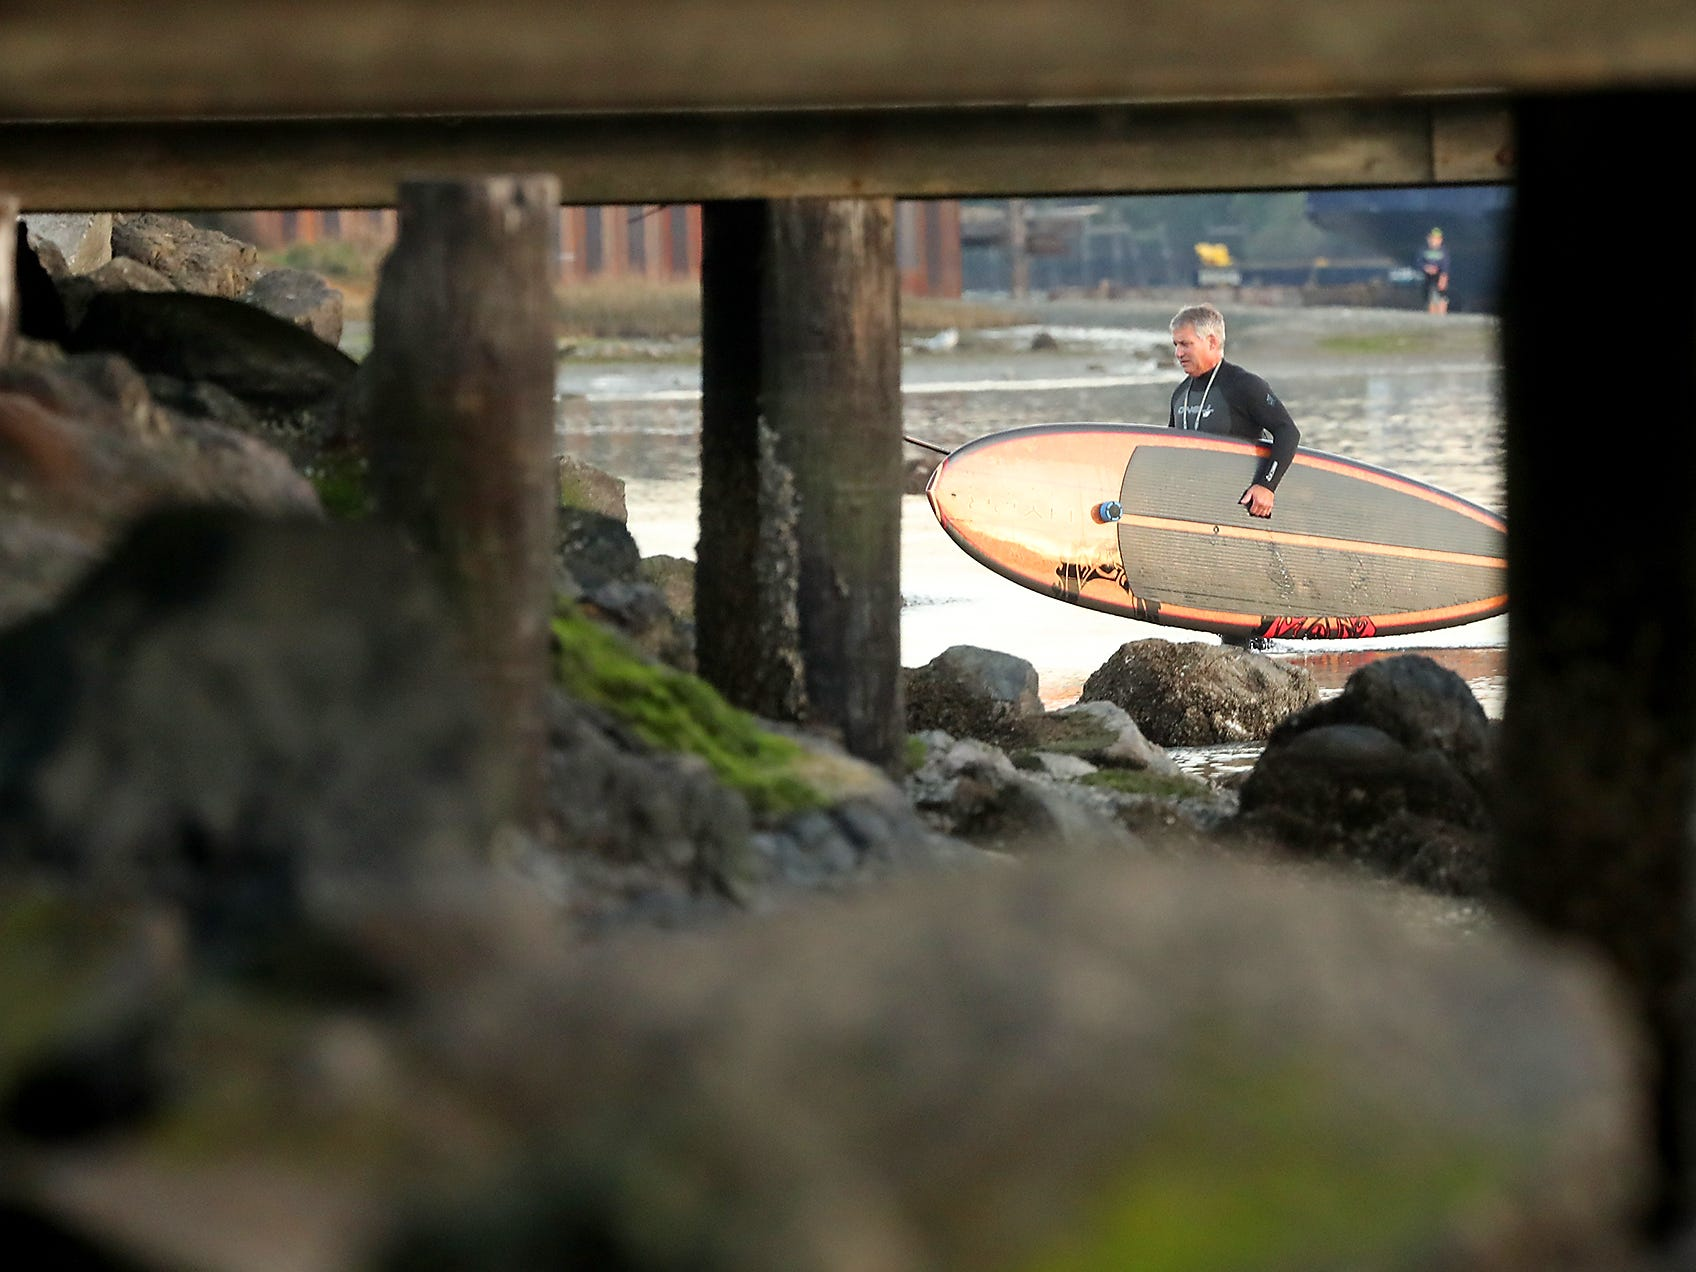 Mark Jeffries, of Bremerton, is framed by the dock pilings as he carries his stand-up paddle board out of the water after paddling at Lions Park in Bremerton on Monday, November 12, 2018.